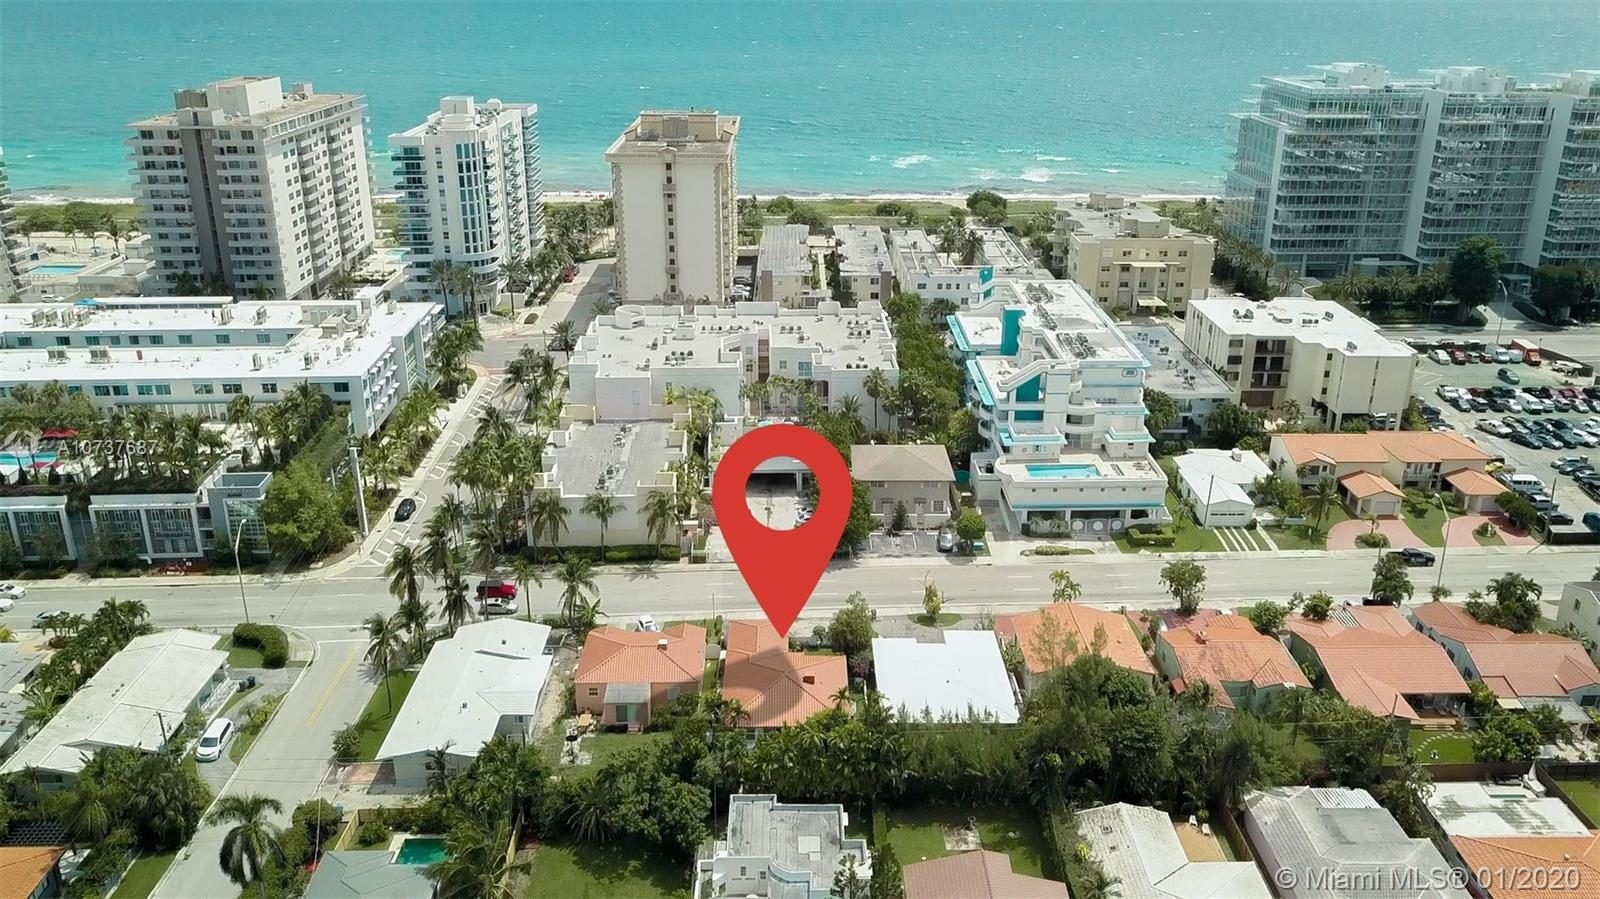 The best-priced !,  4 bedrooms, 4 Bathrooms Home across the beach in the town of Surfside. Each bedr